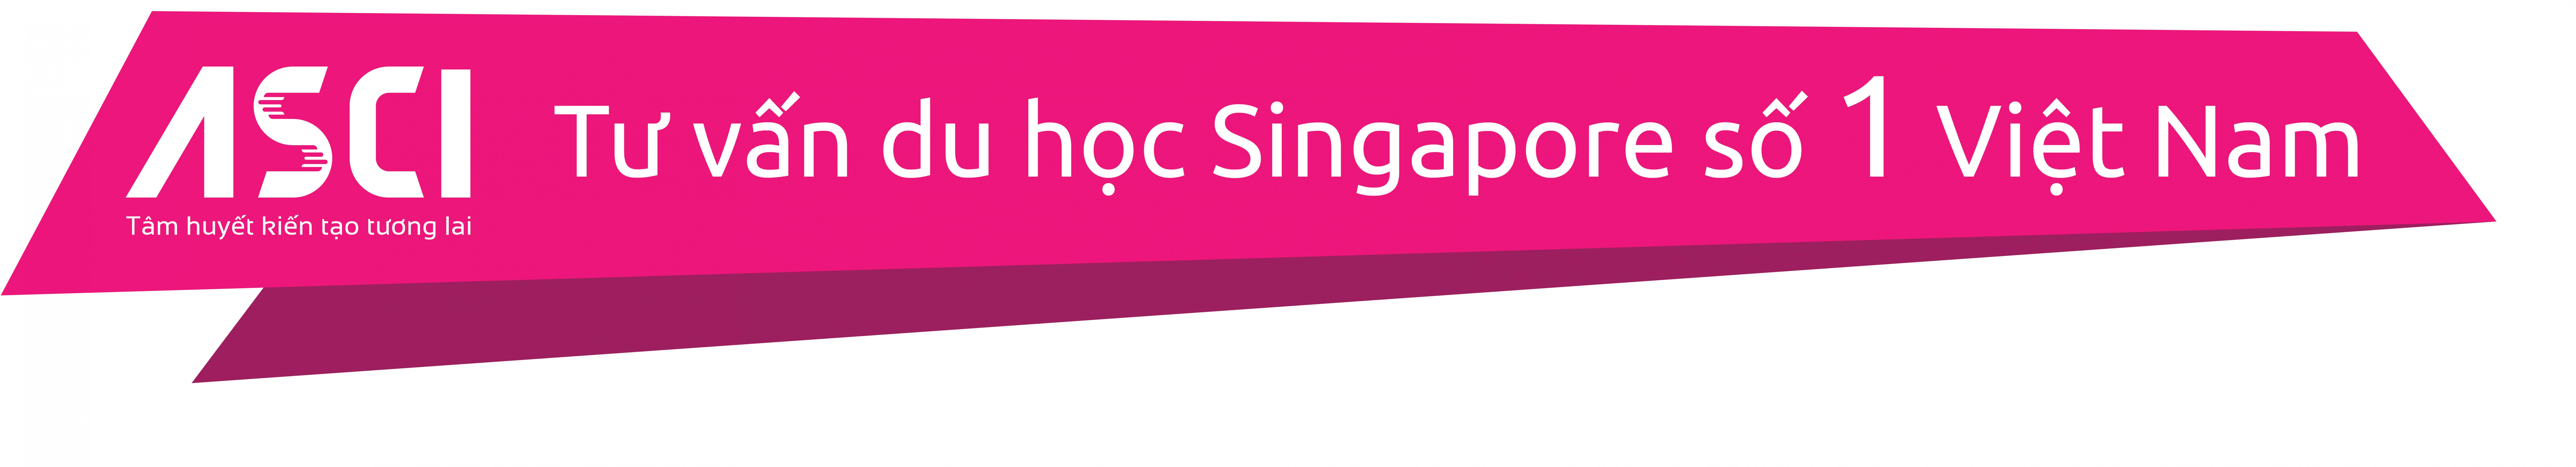 footer singapore